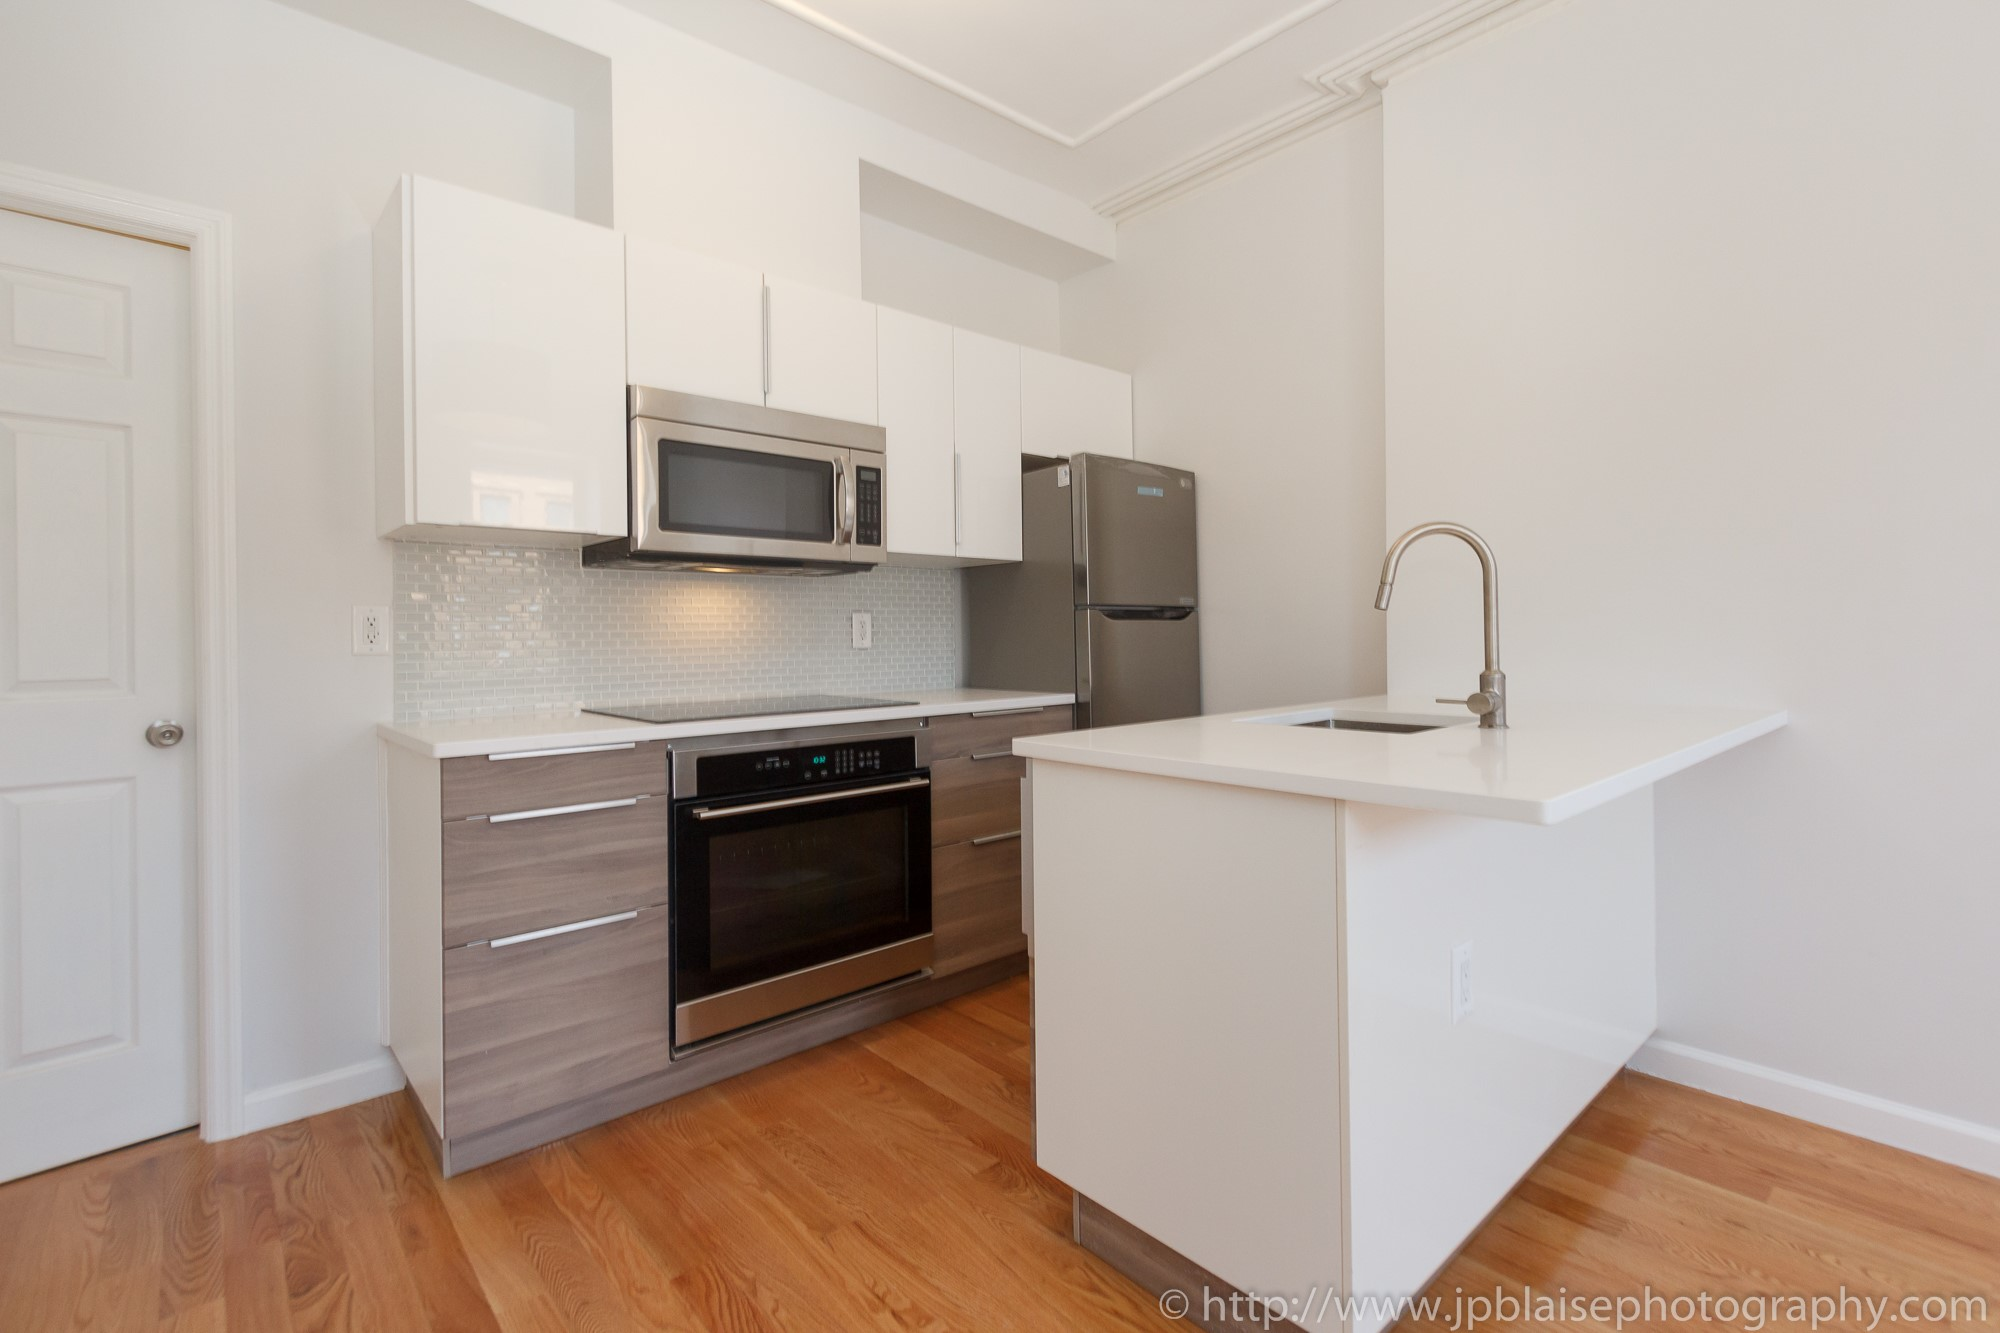 Brooklyn interior photography work one bedroom in bedford stuyvesant new york